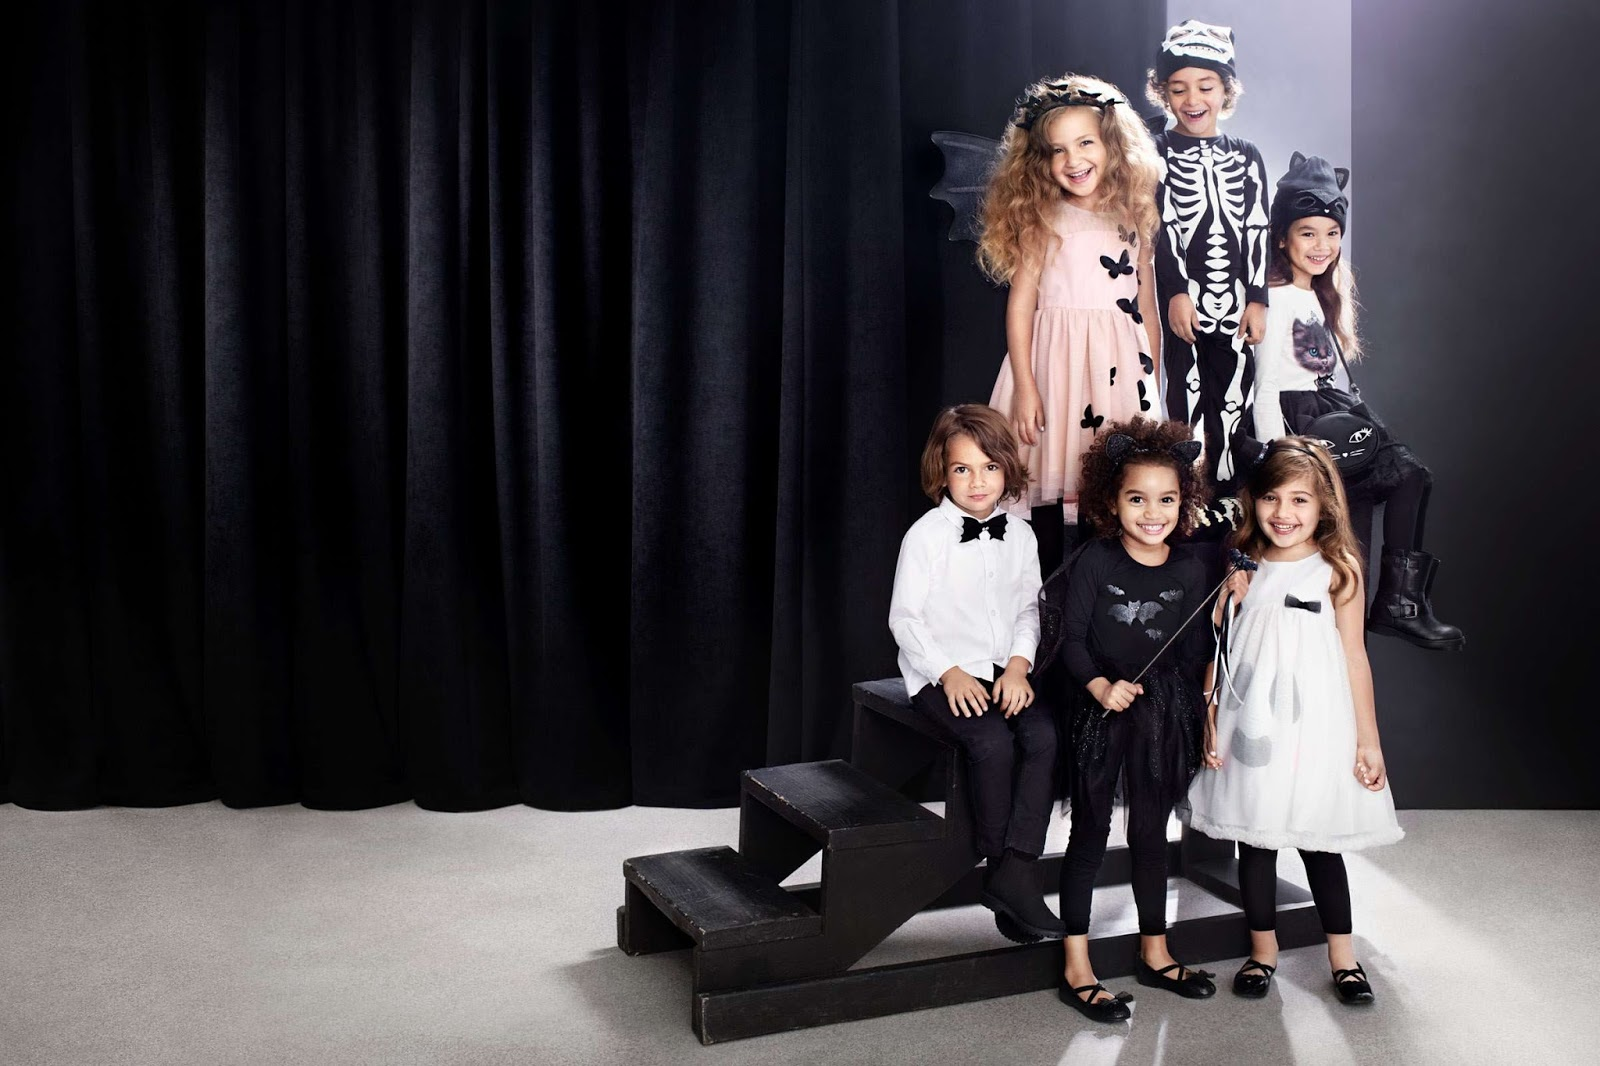 Hm Halloween.More Treat Than Trick Stylish Halloween Style For Kids At